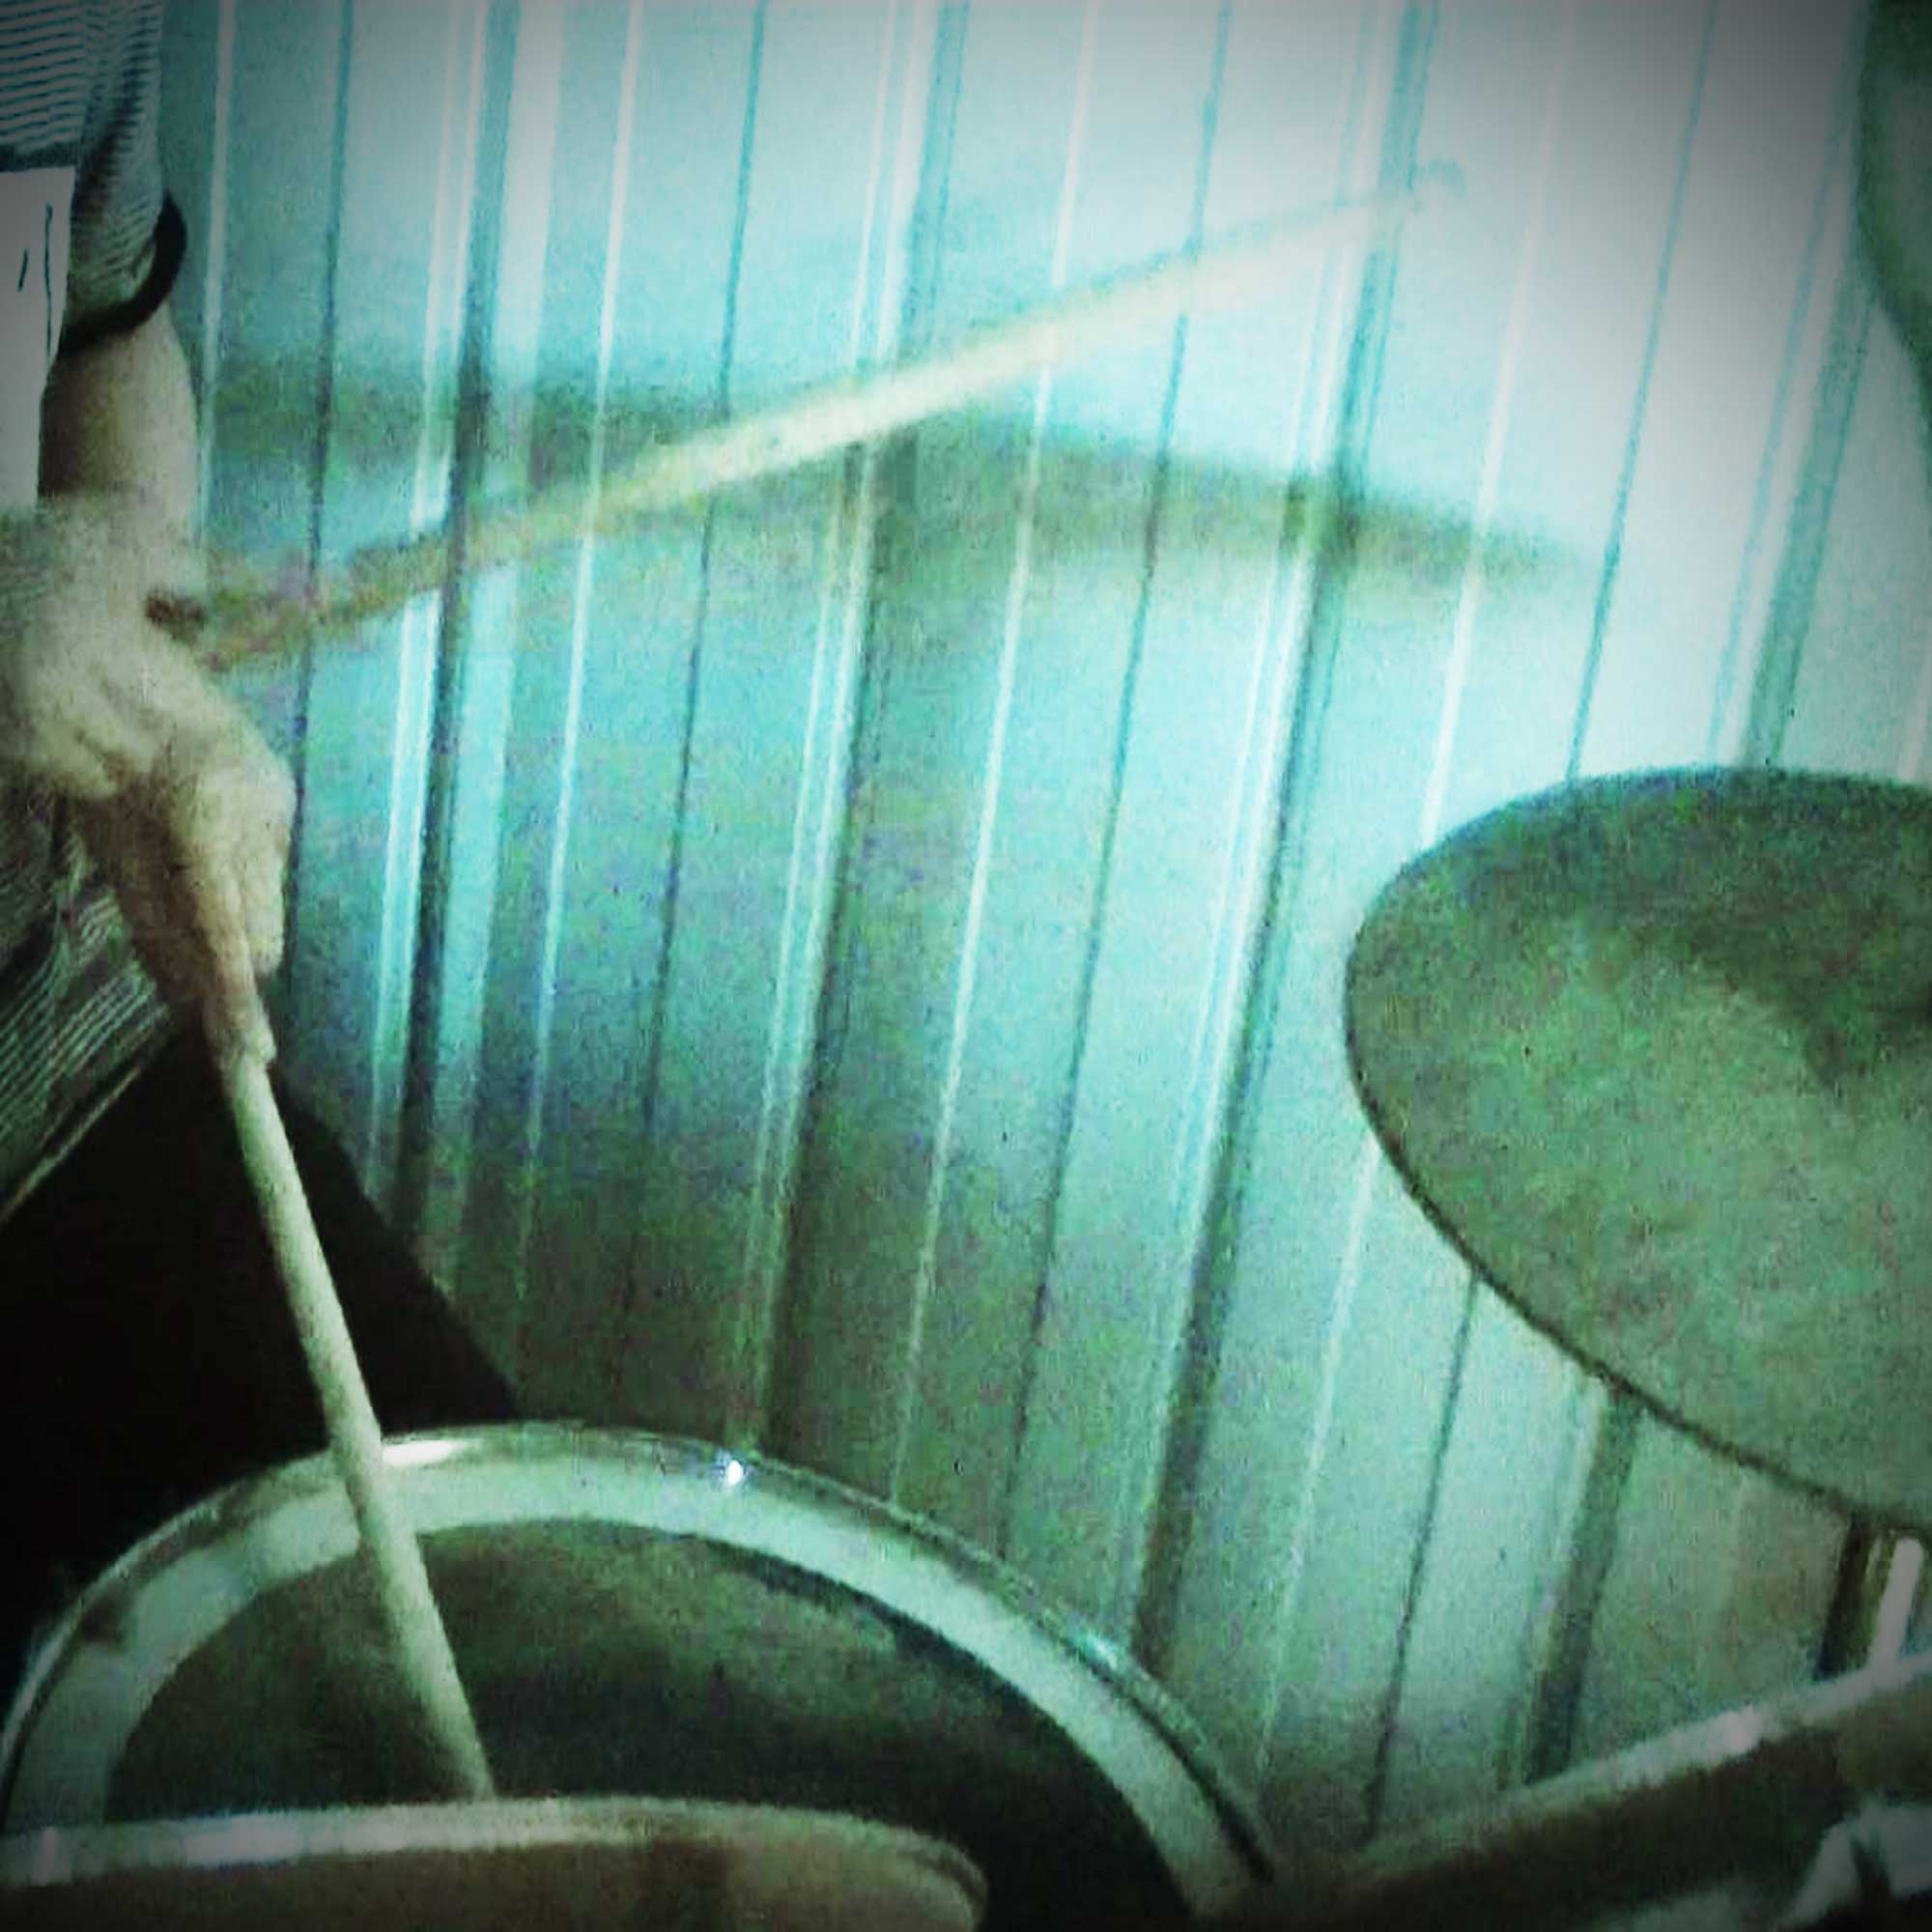 Tookii things to do with kids learning drums